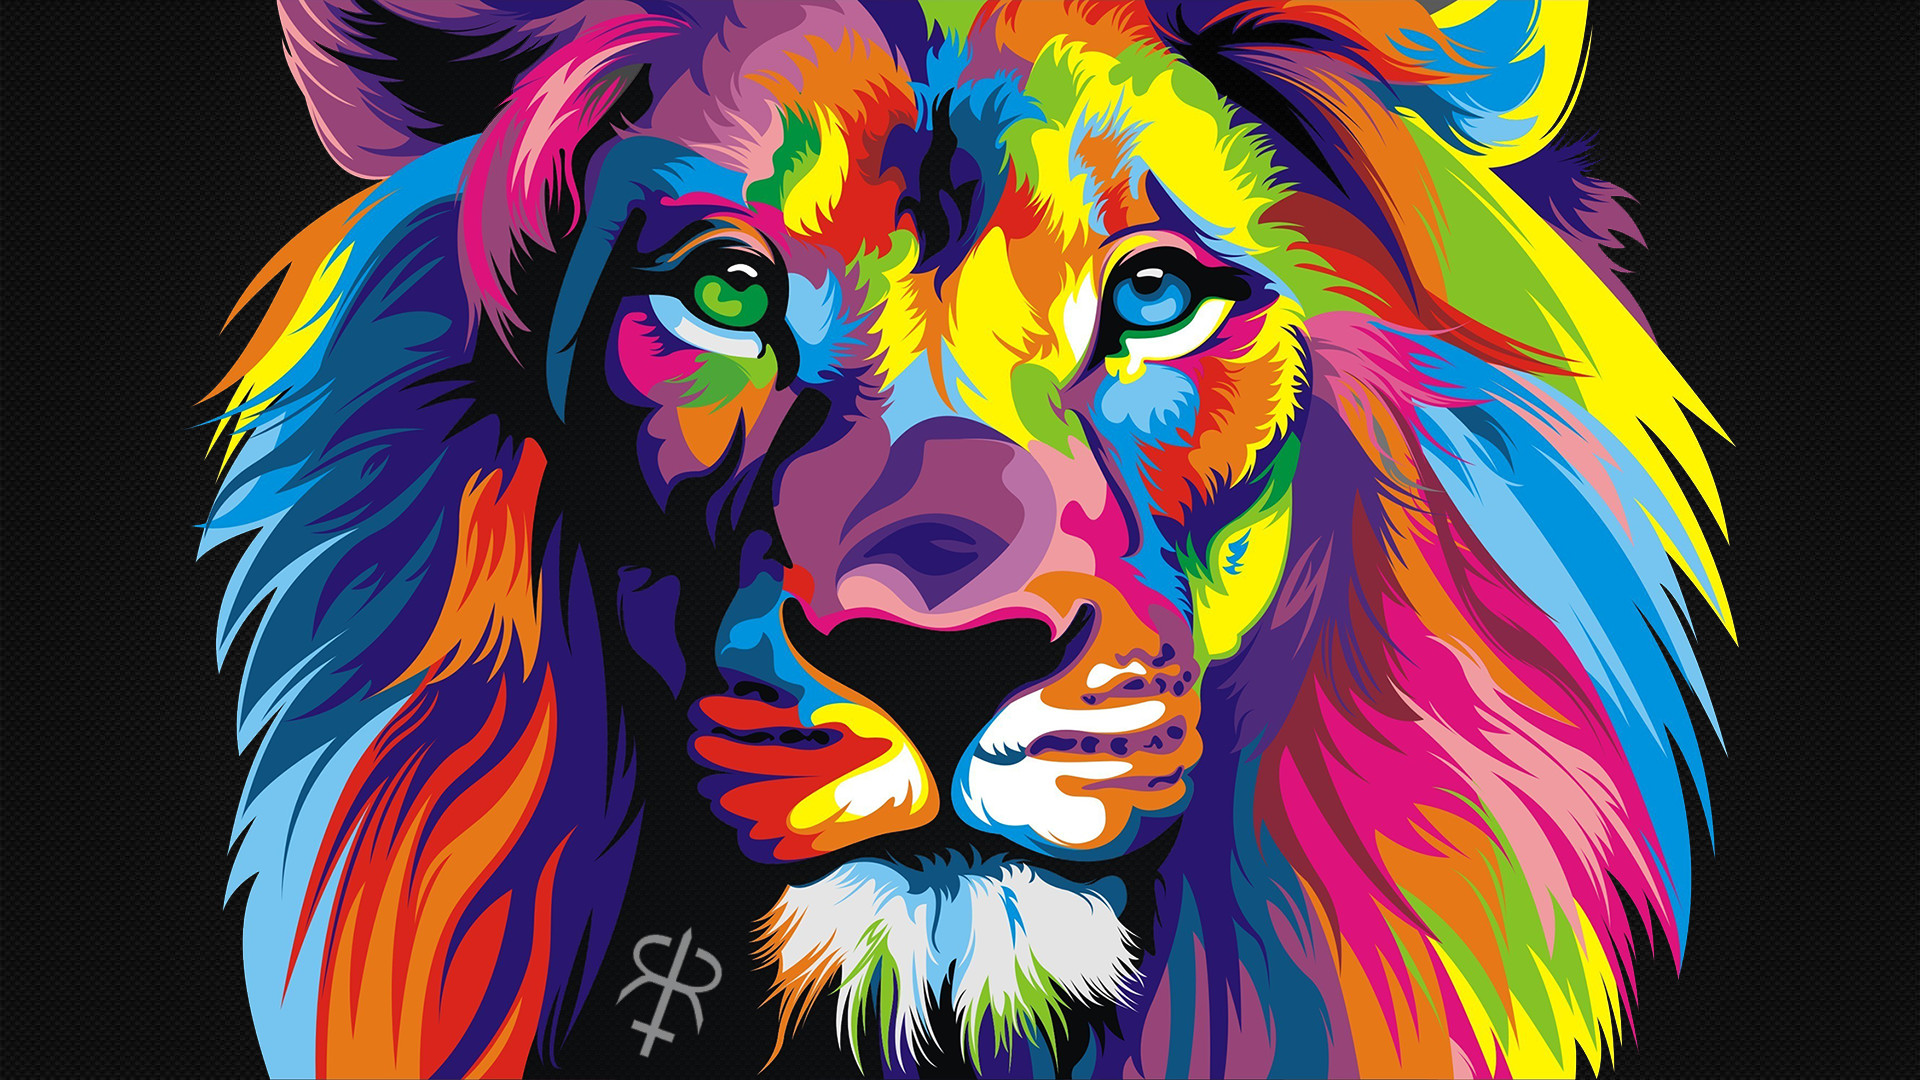 Hq Car Wallpapers Rainbow Lion Wallpaper 57 Images